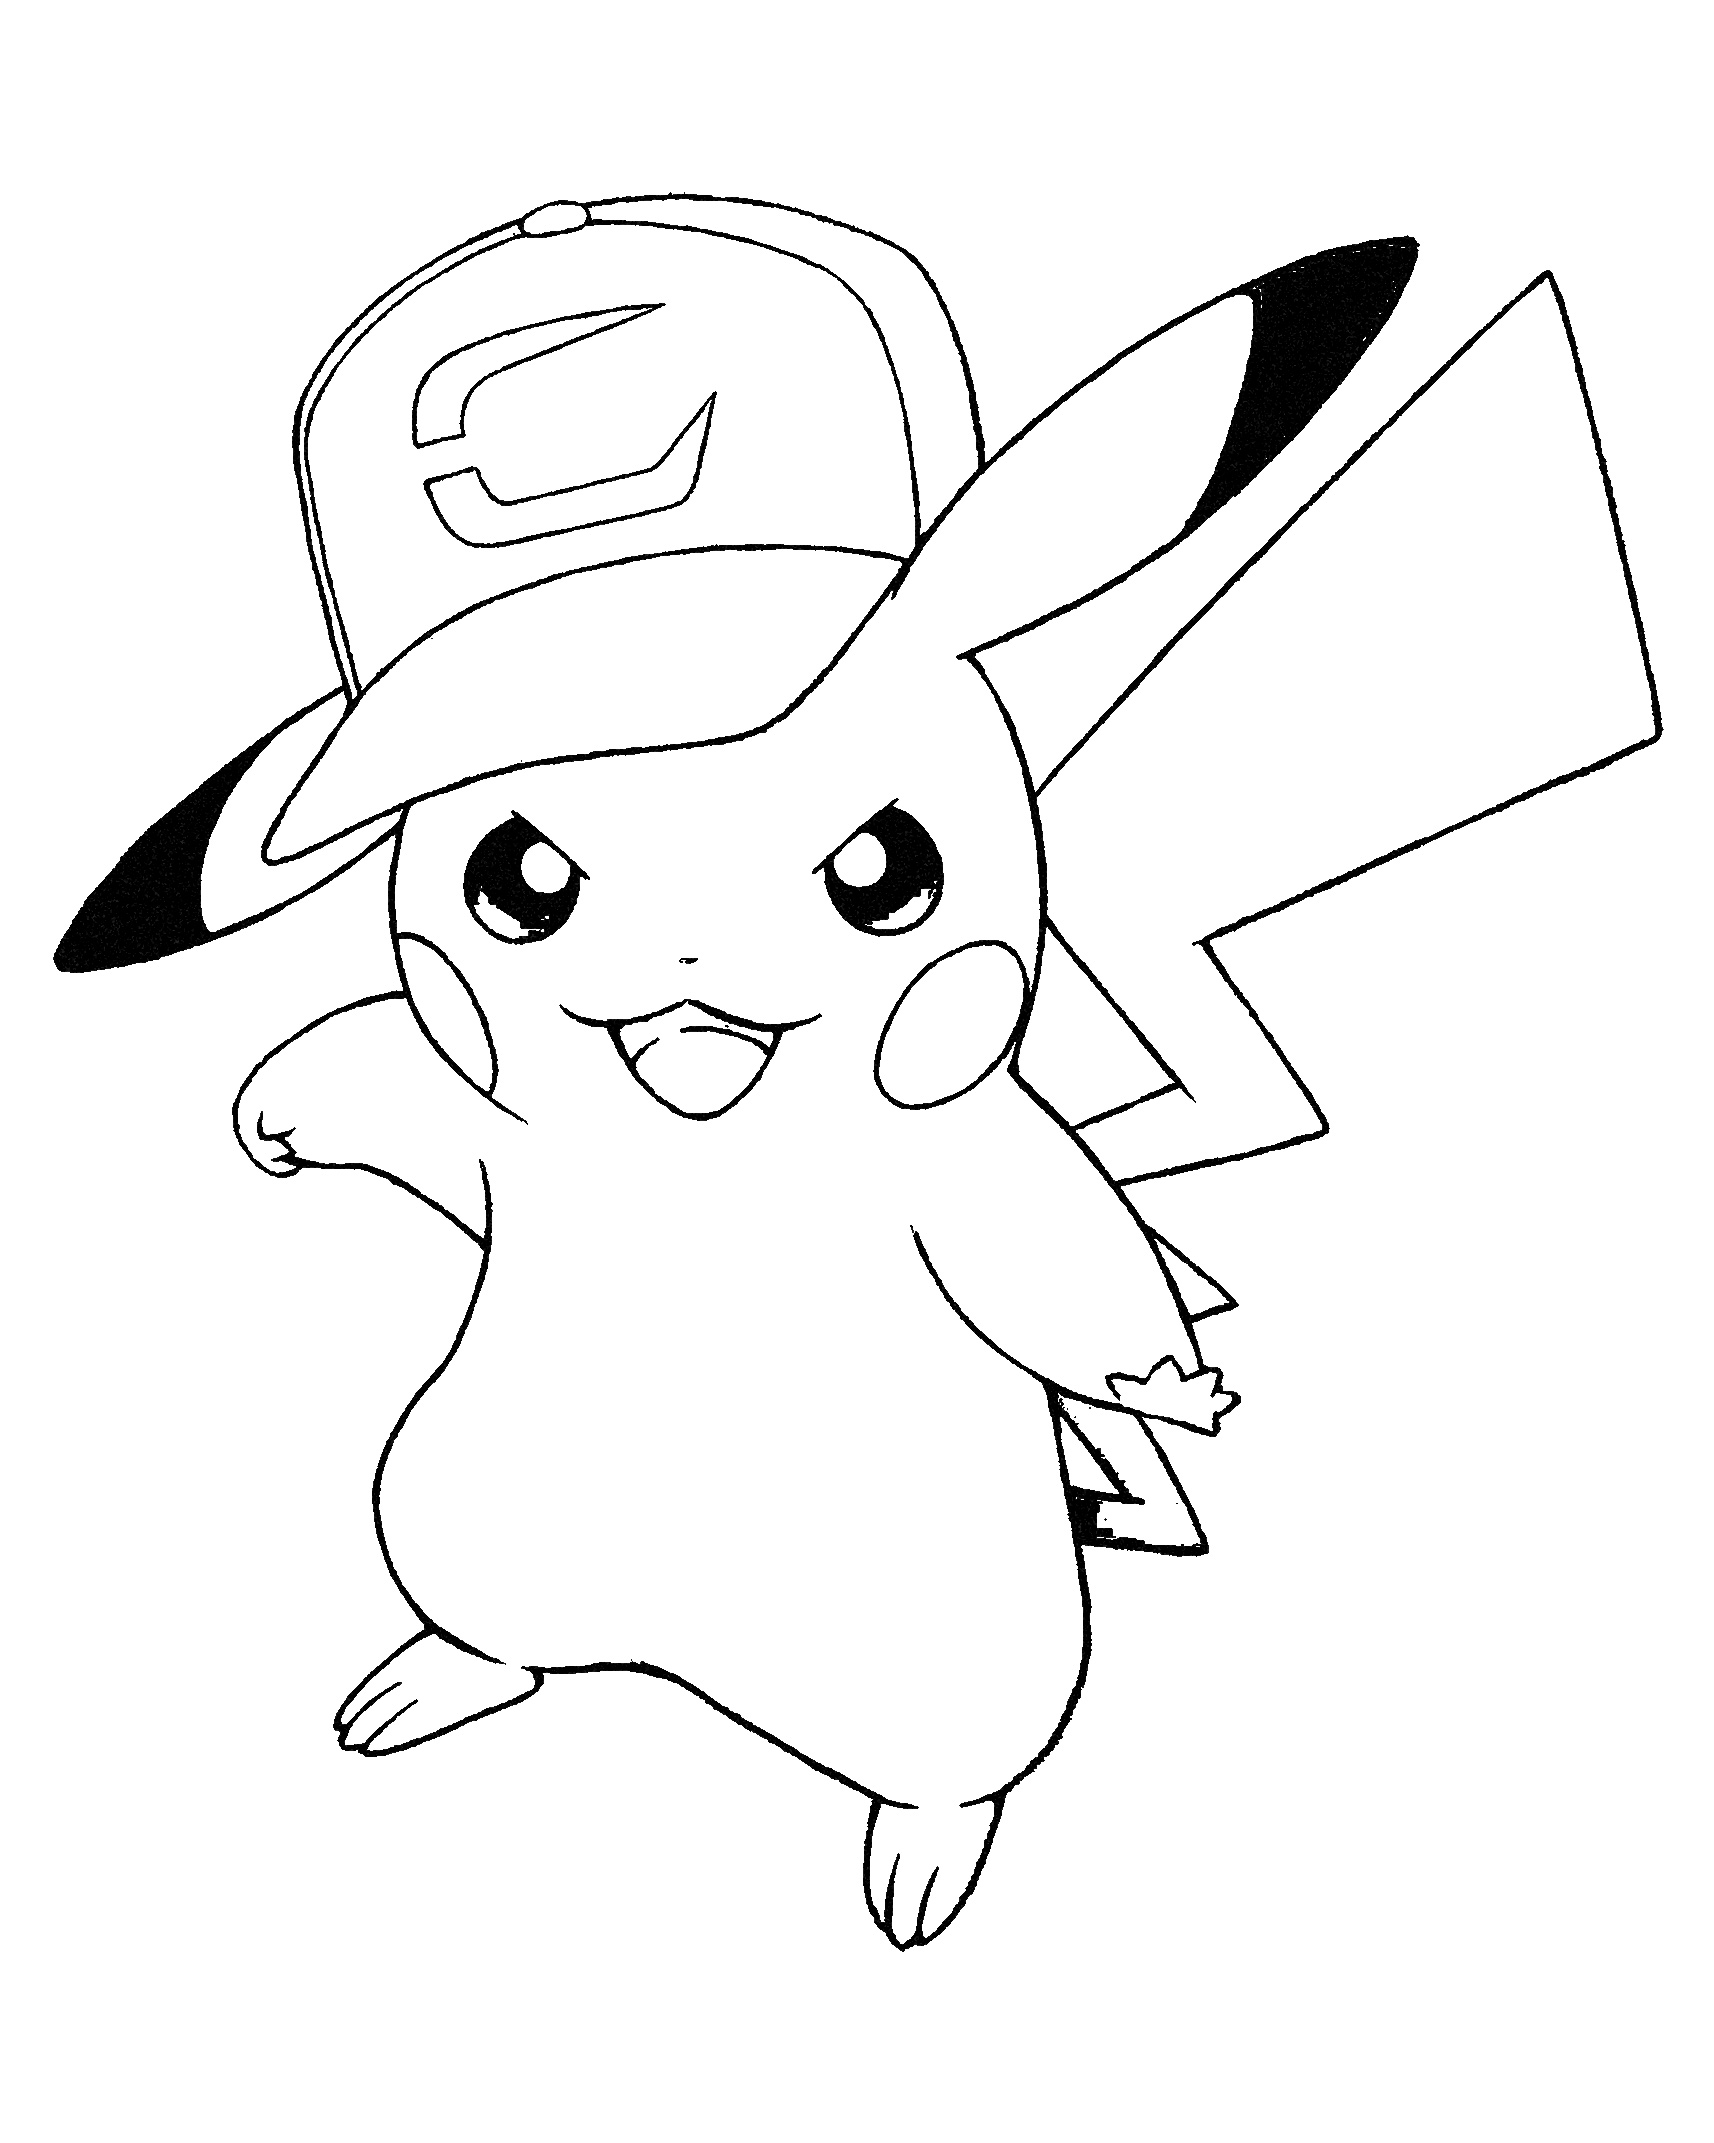 picachu coloring pages pikachu coloring pages to download and print for free picachu coloring pages